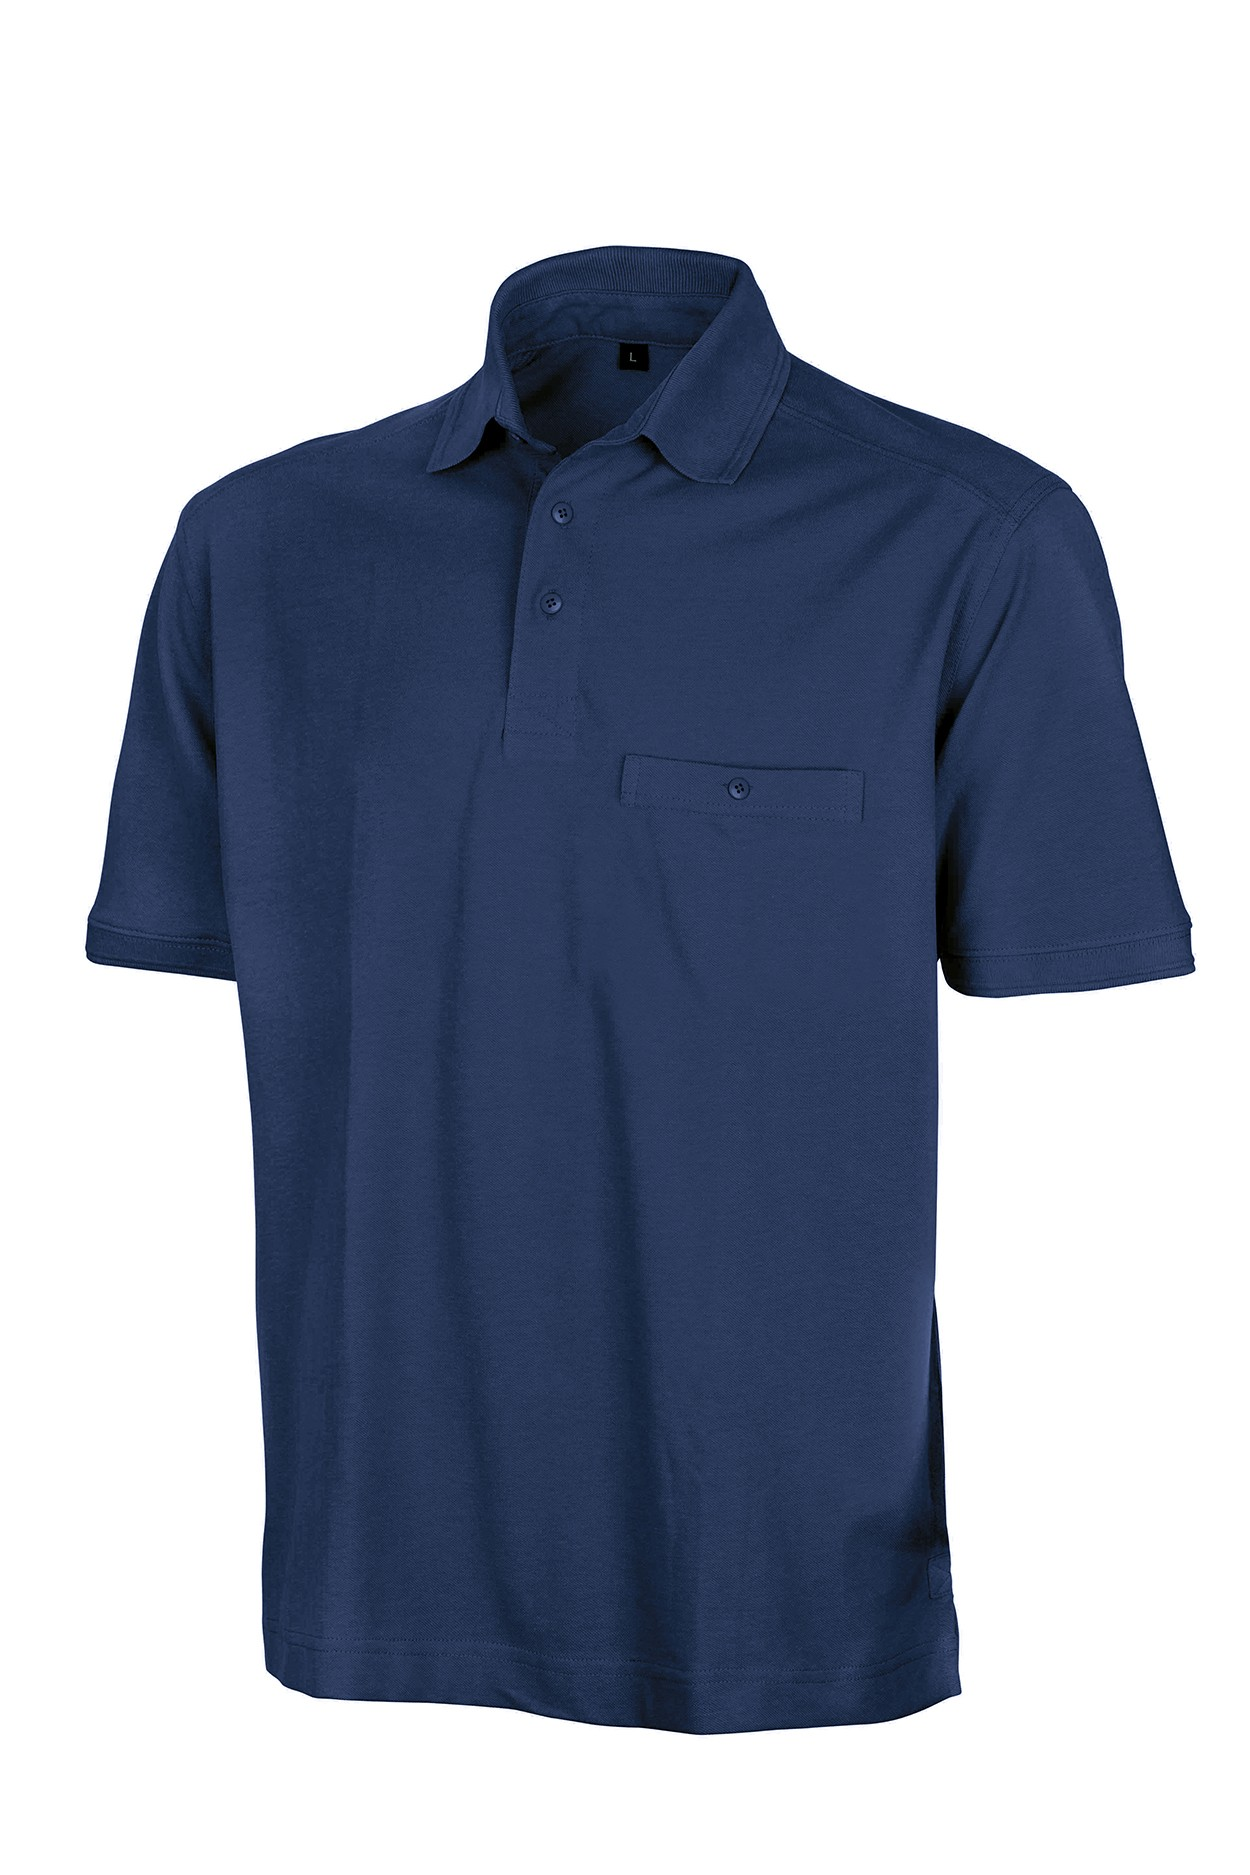 ... Result Work-Guard Apex Polo Shirt Navy ...